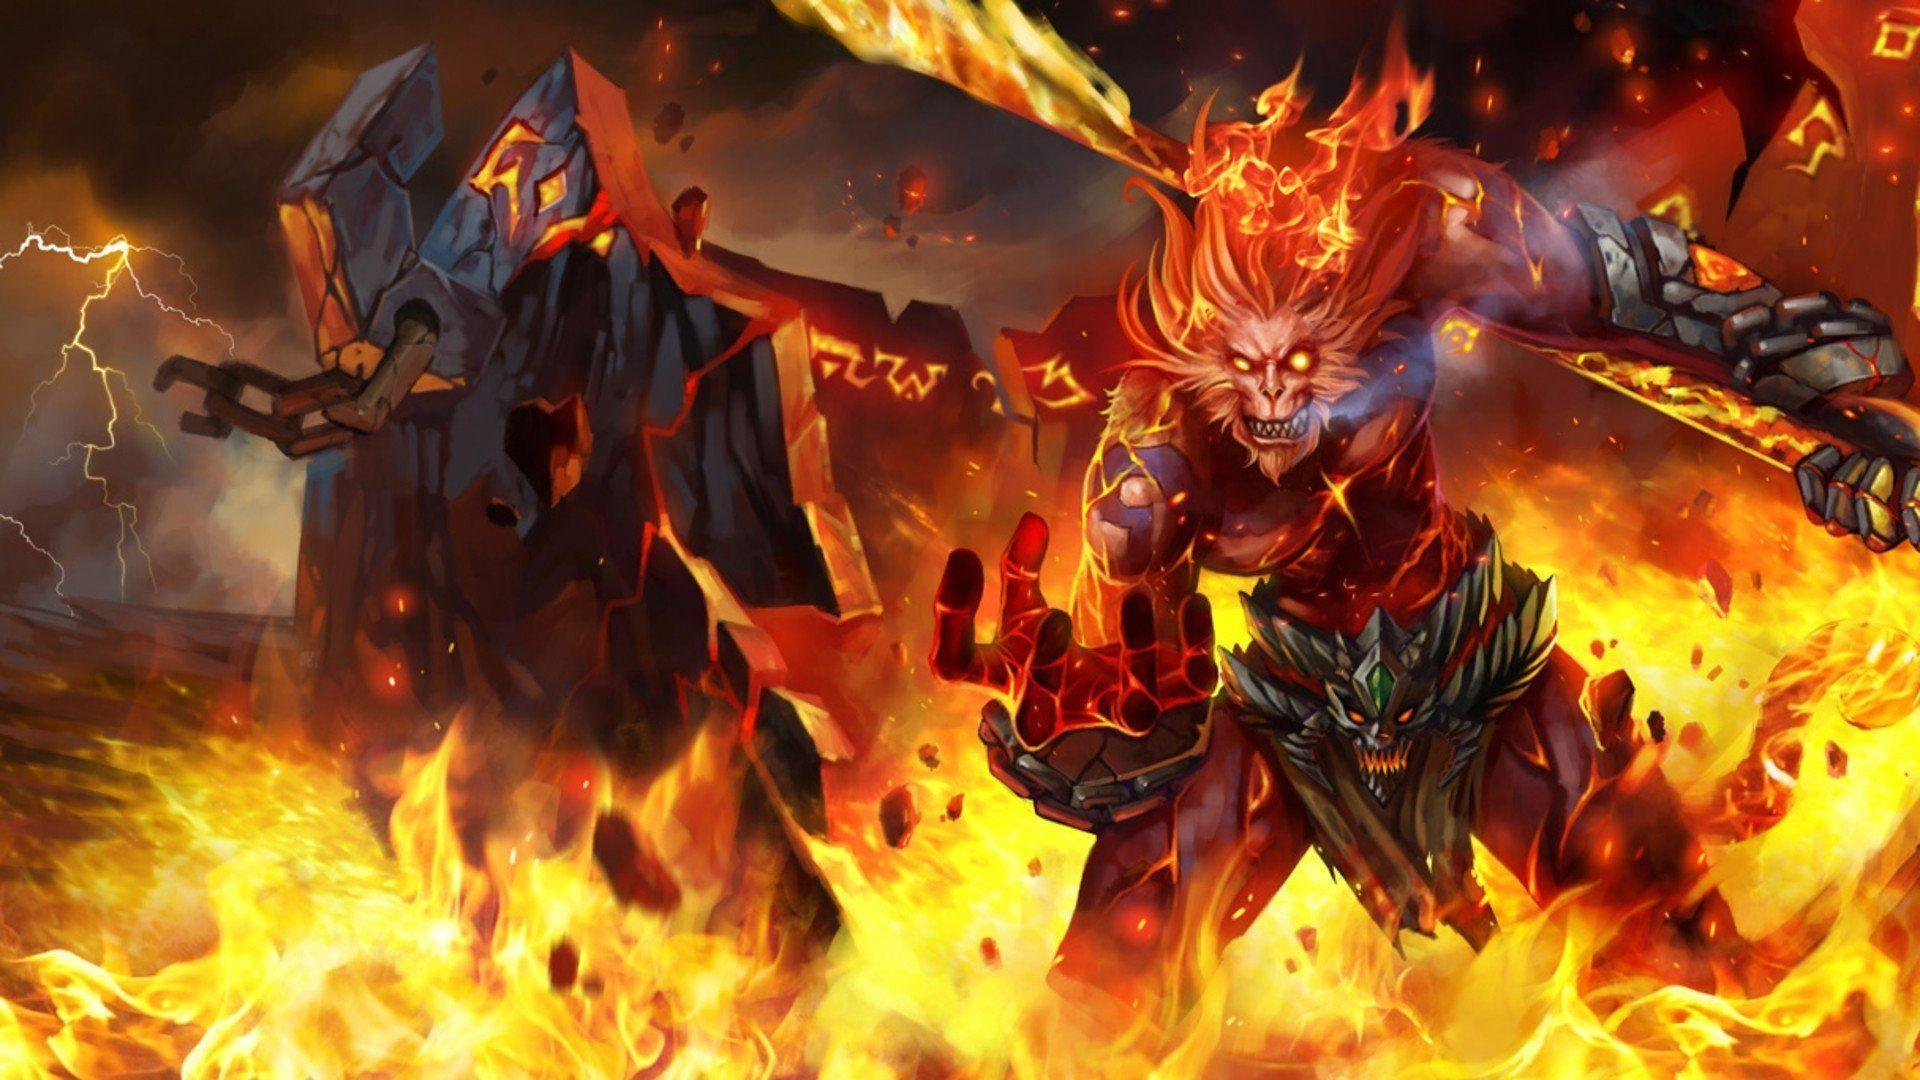 20 Wukong (League Of Legends) HD Wallpapers | Backgrounds .